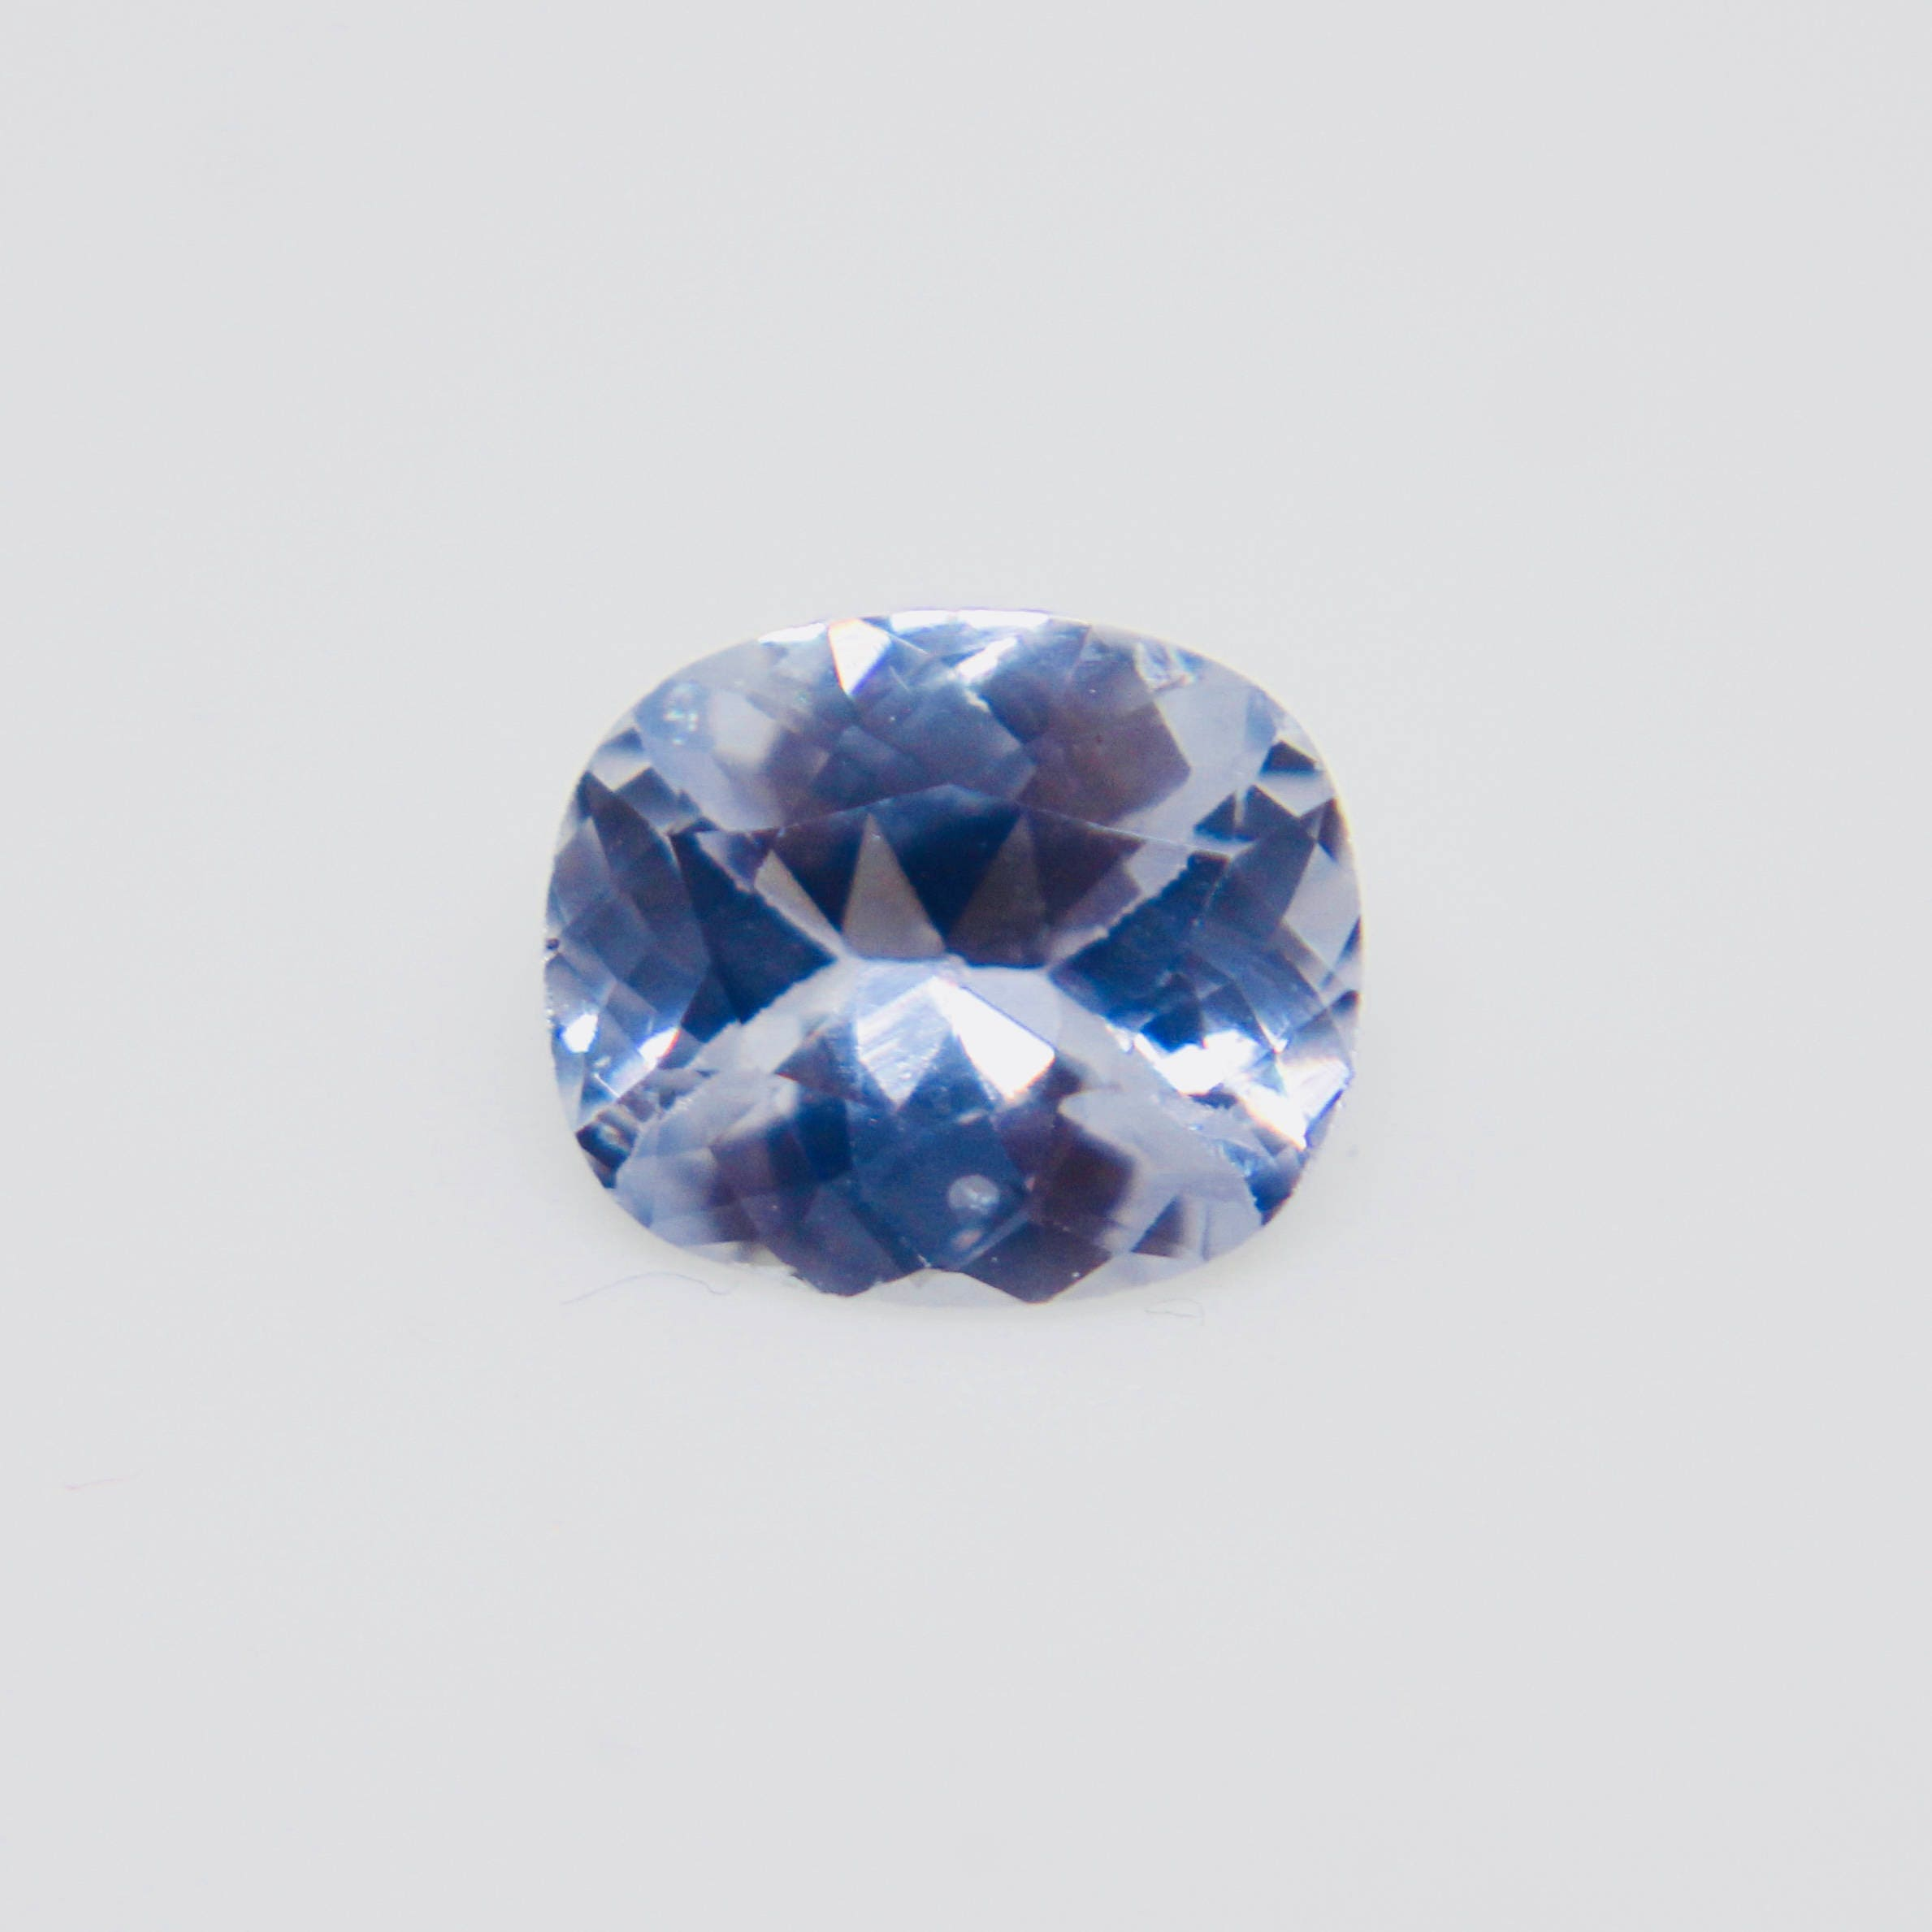 center pale jewelry gemstone montana blue lc shop sapphire education